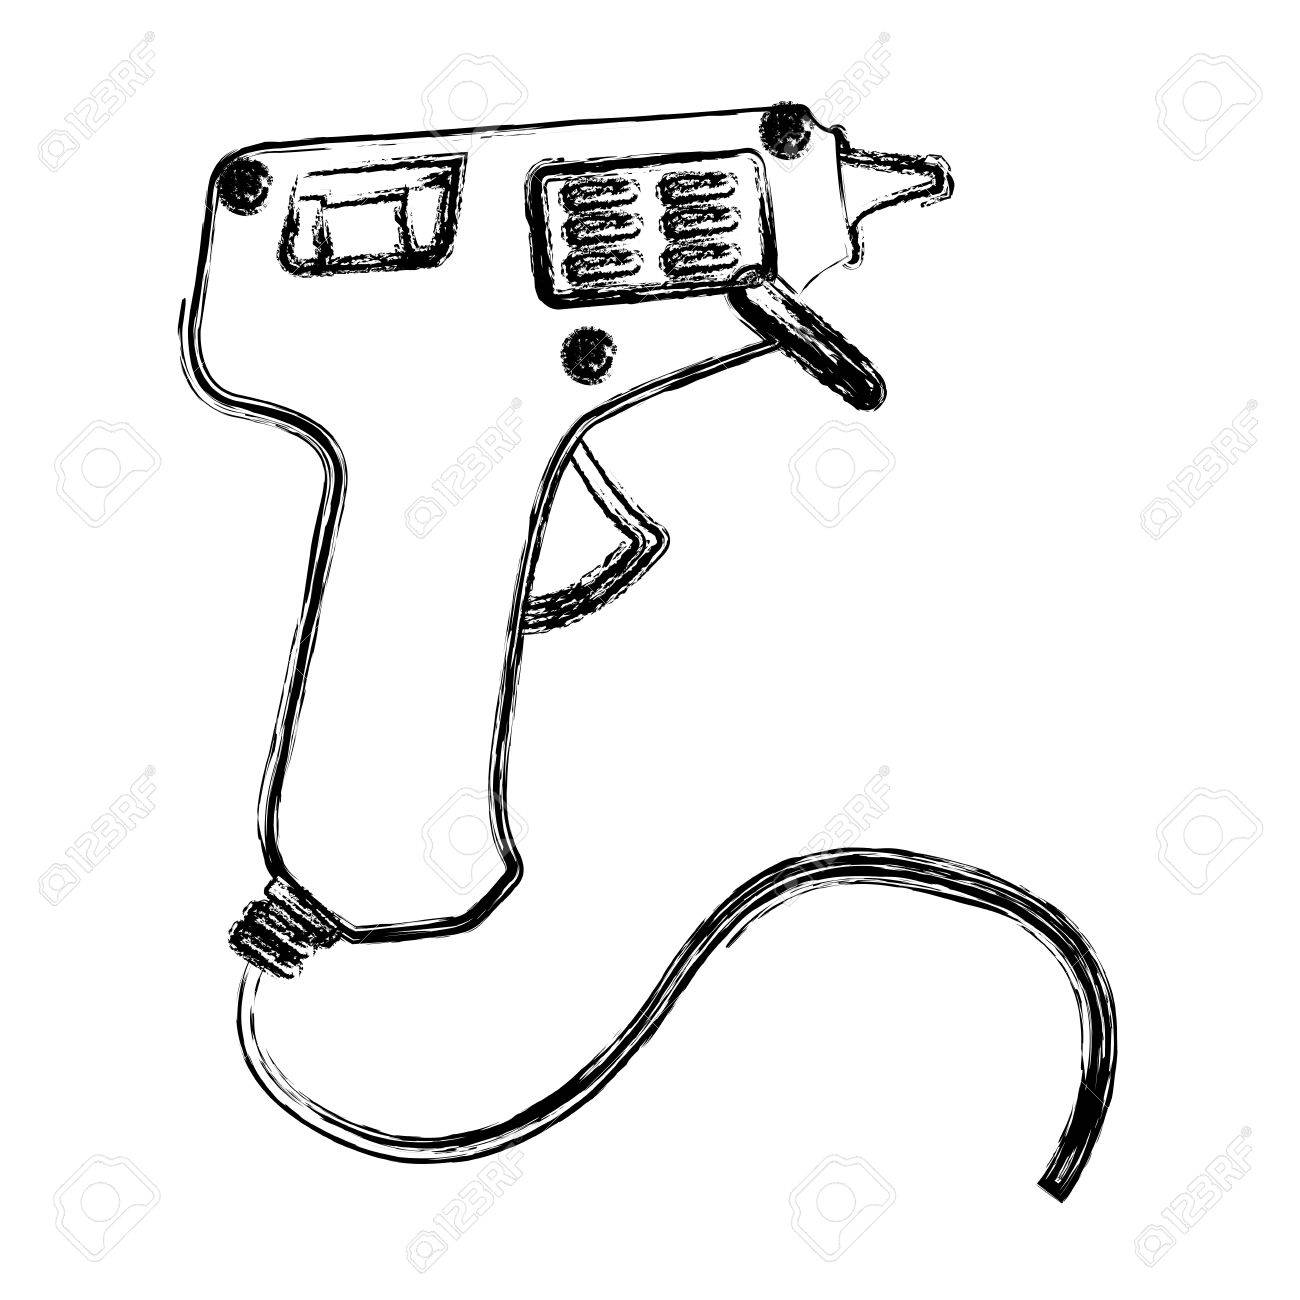 blurred silhouette electric glue gun icon tool vector illustration